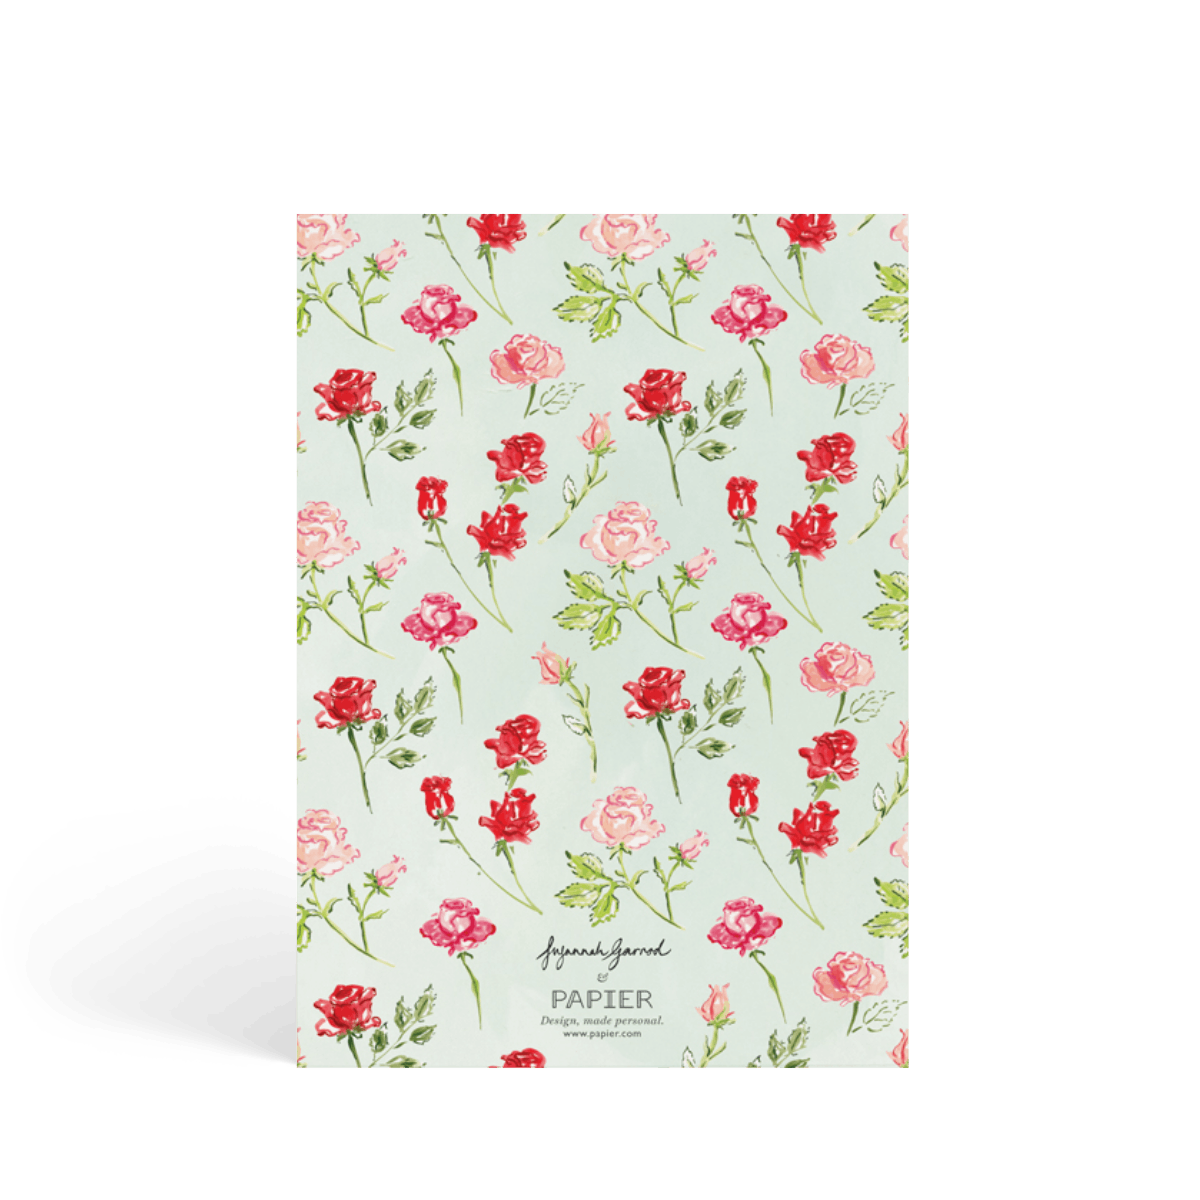 Https%3a%2f%2fwww.papier.com%2fproduct image%2f99418%2f5%2frose garden 25355 back 1577101524.png?ixlib=rb 1.1